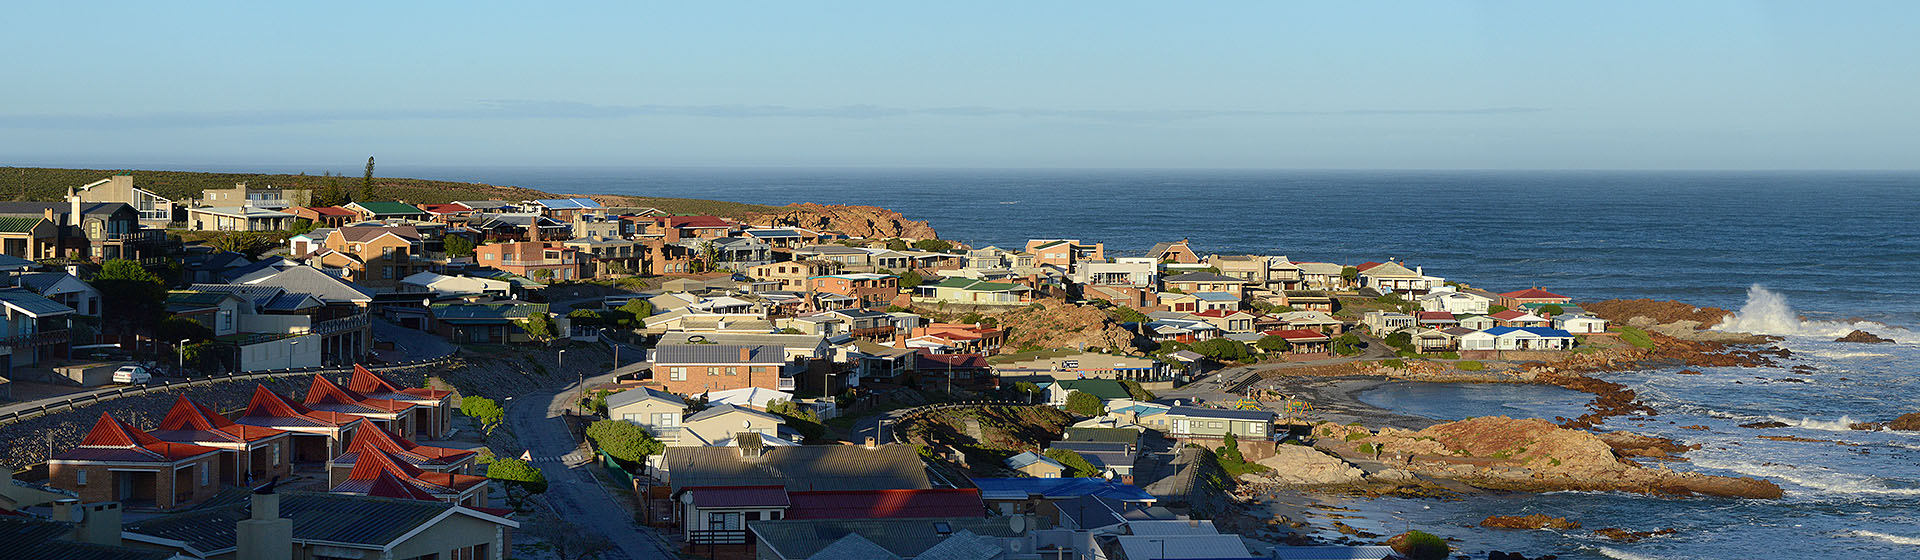 Strandfontein, West Coast